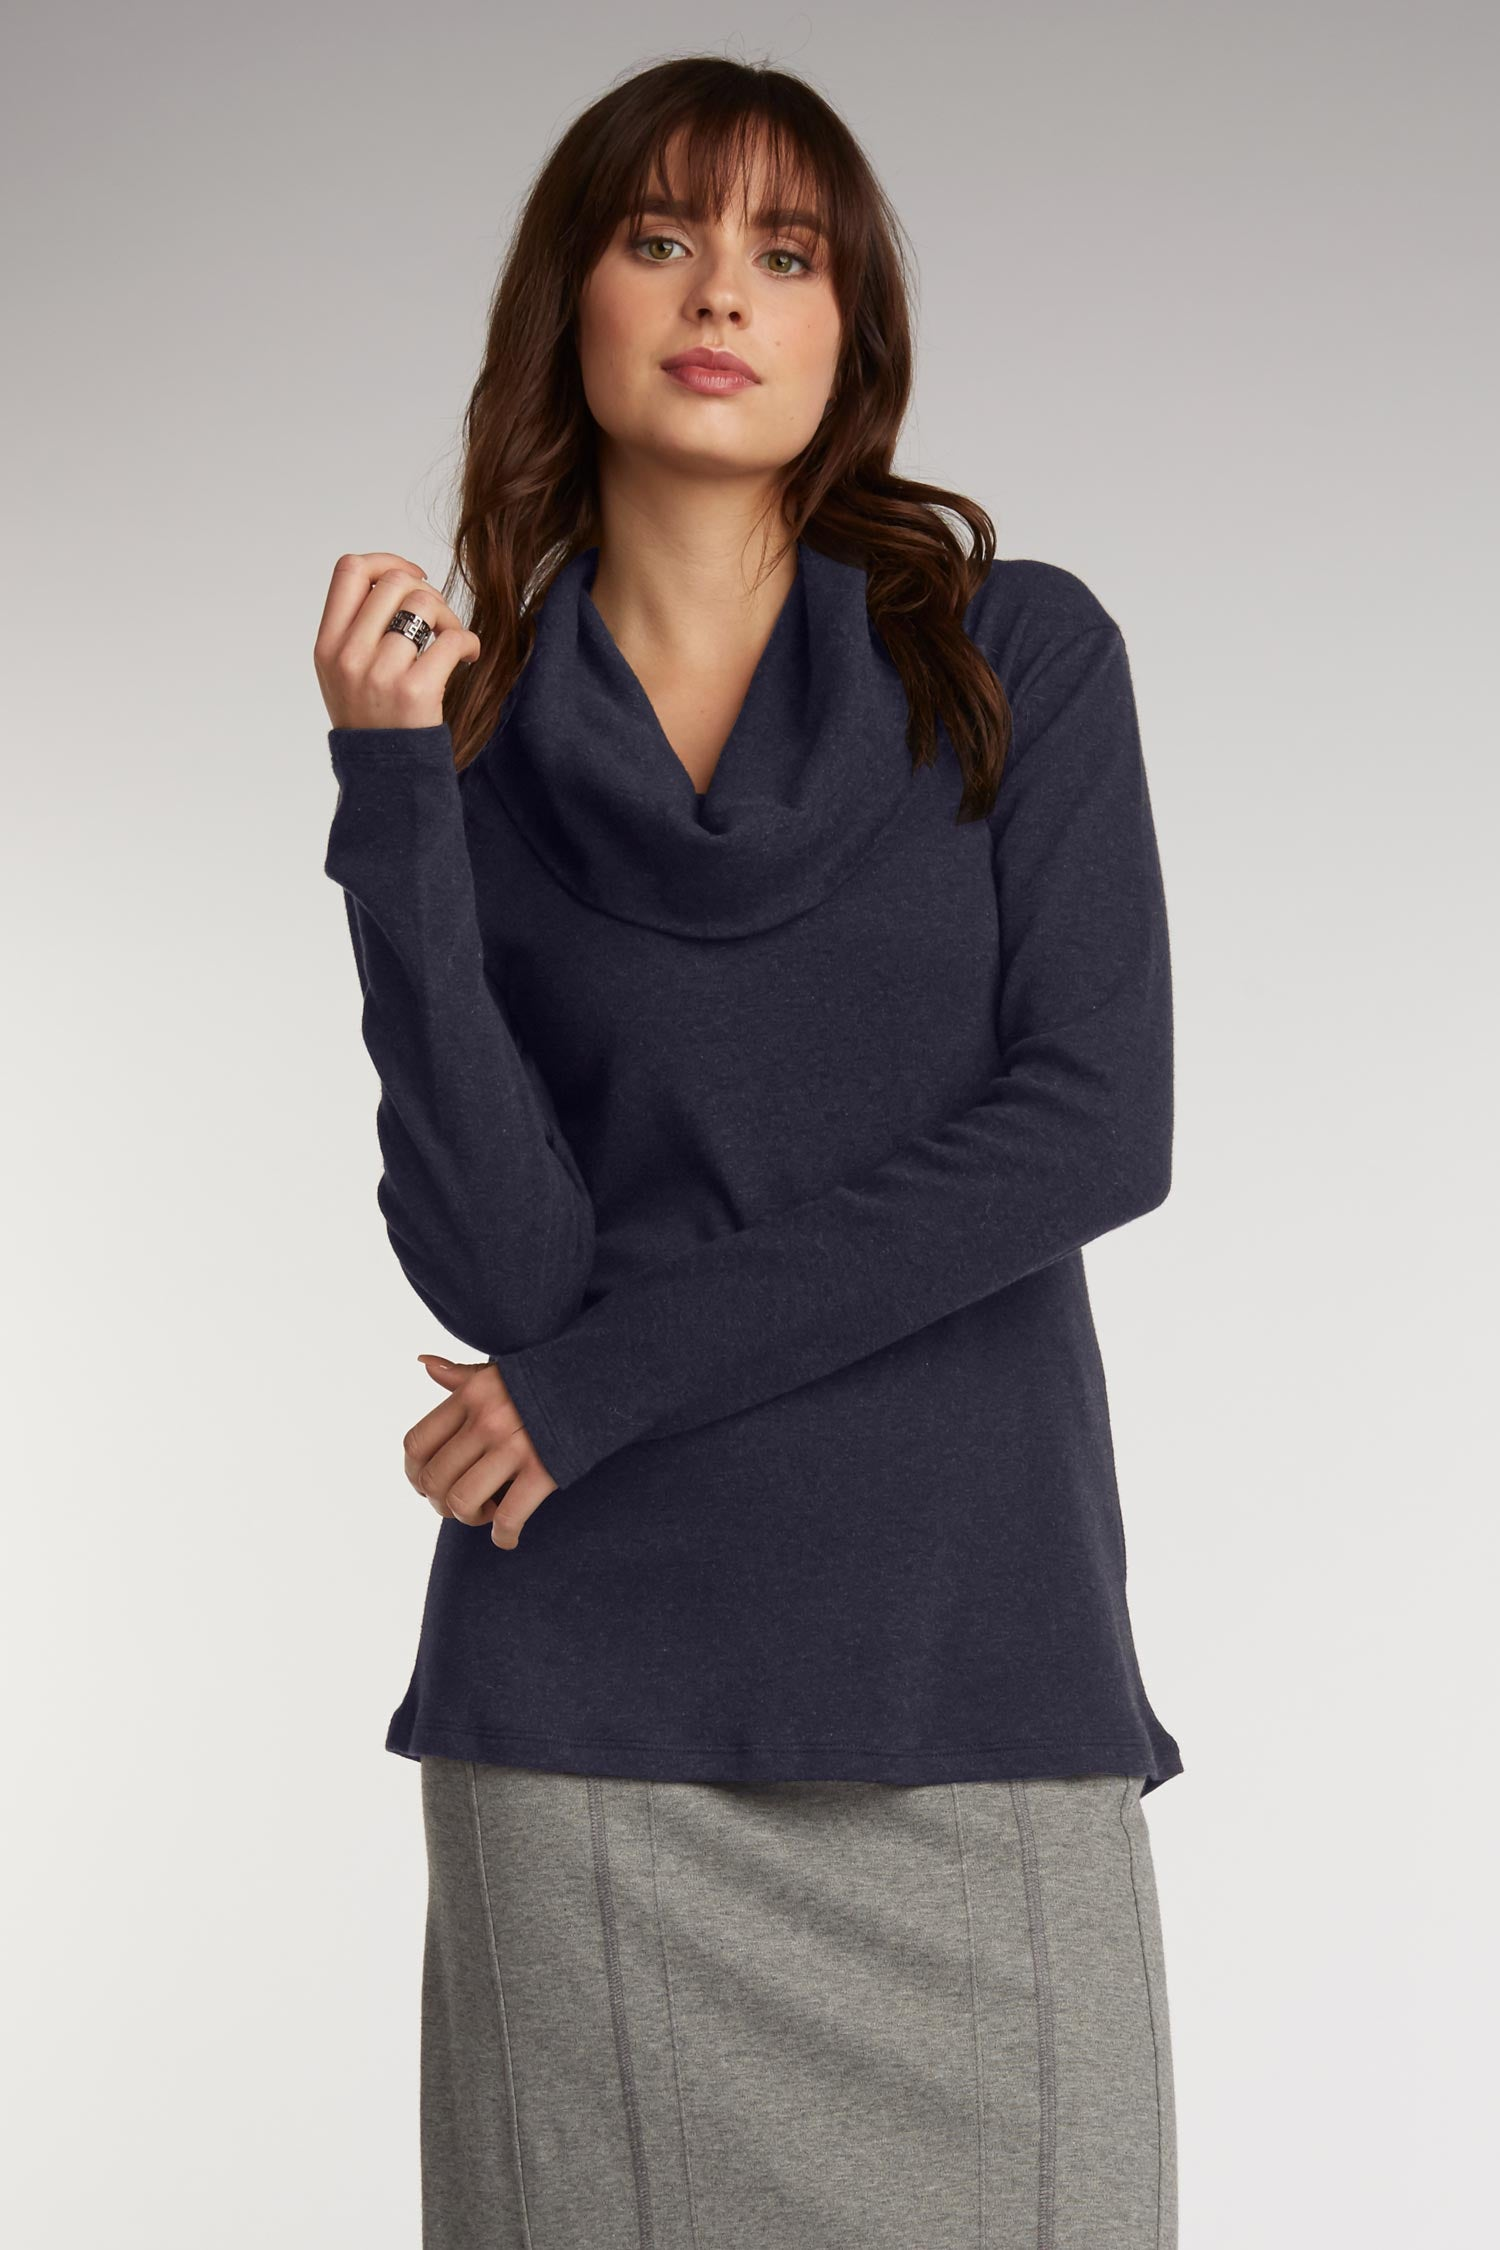 Womens Cowl Neck Top in Navy Blue | Sustainable Fashion